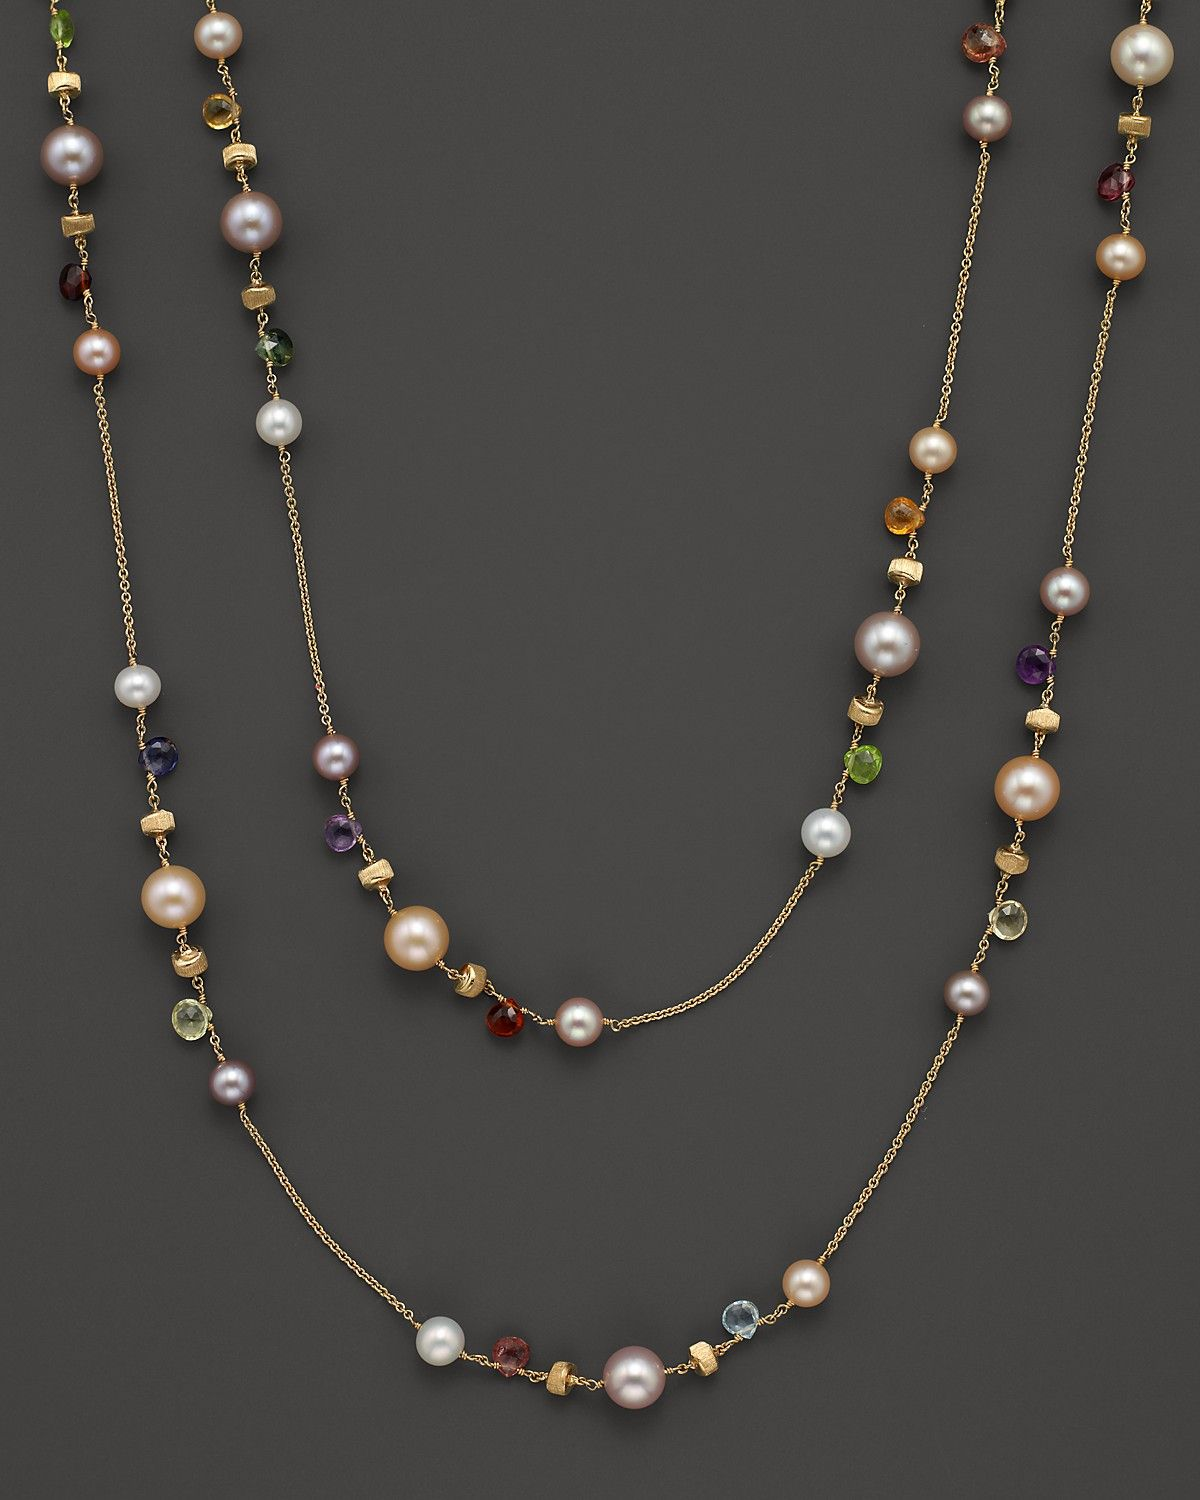 marco bicego   Cute stuff   Pinterest   Marco bicego, Pearls and ...